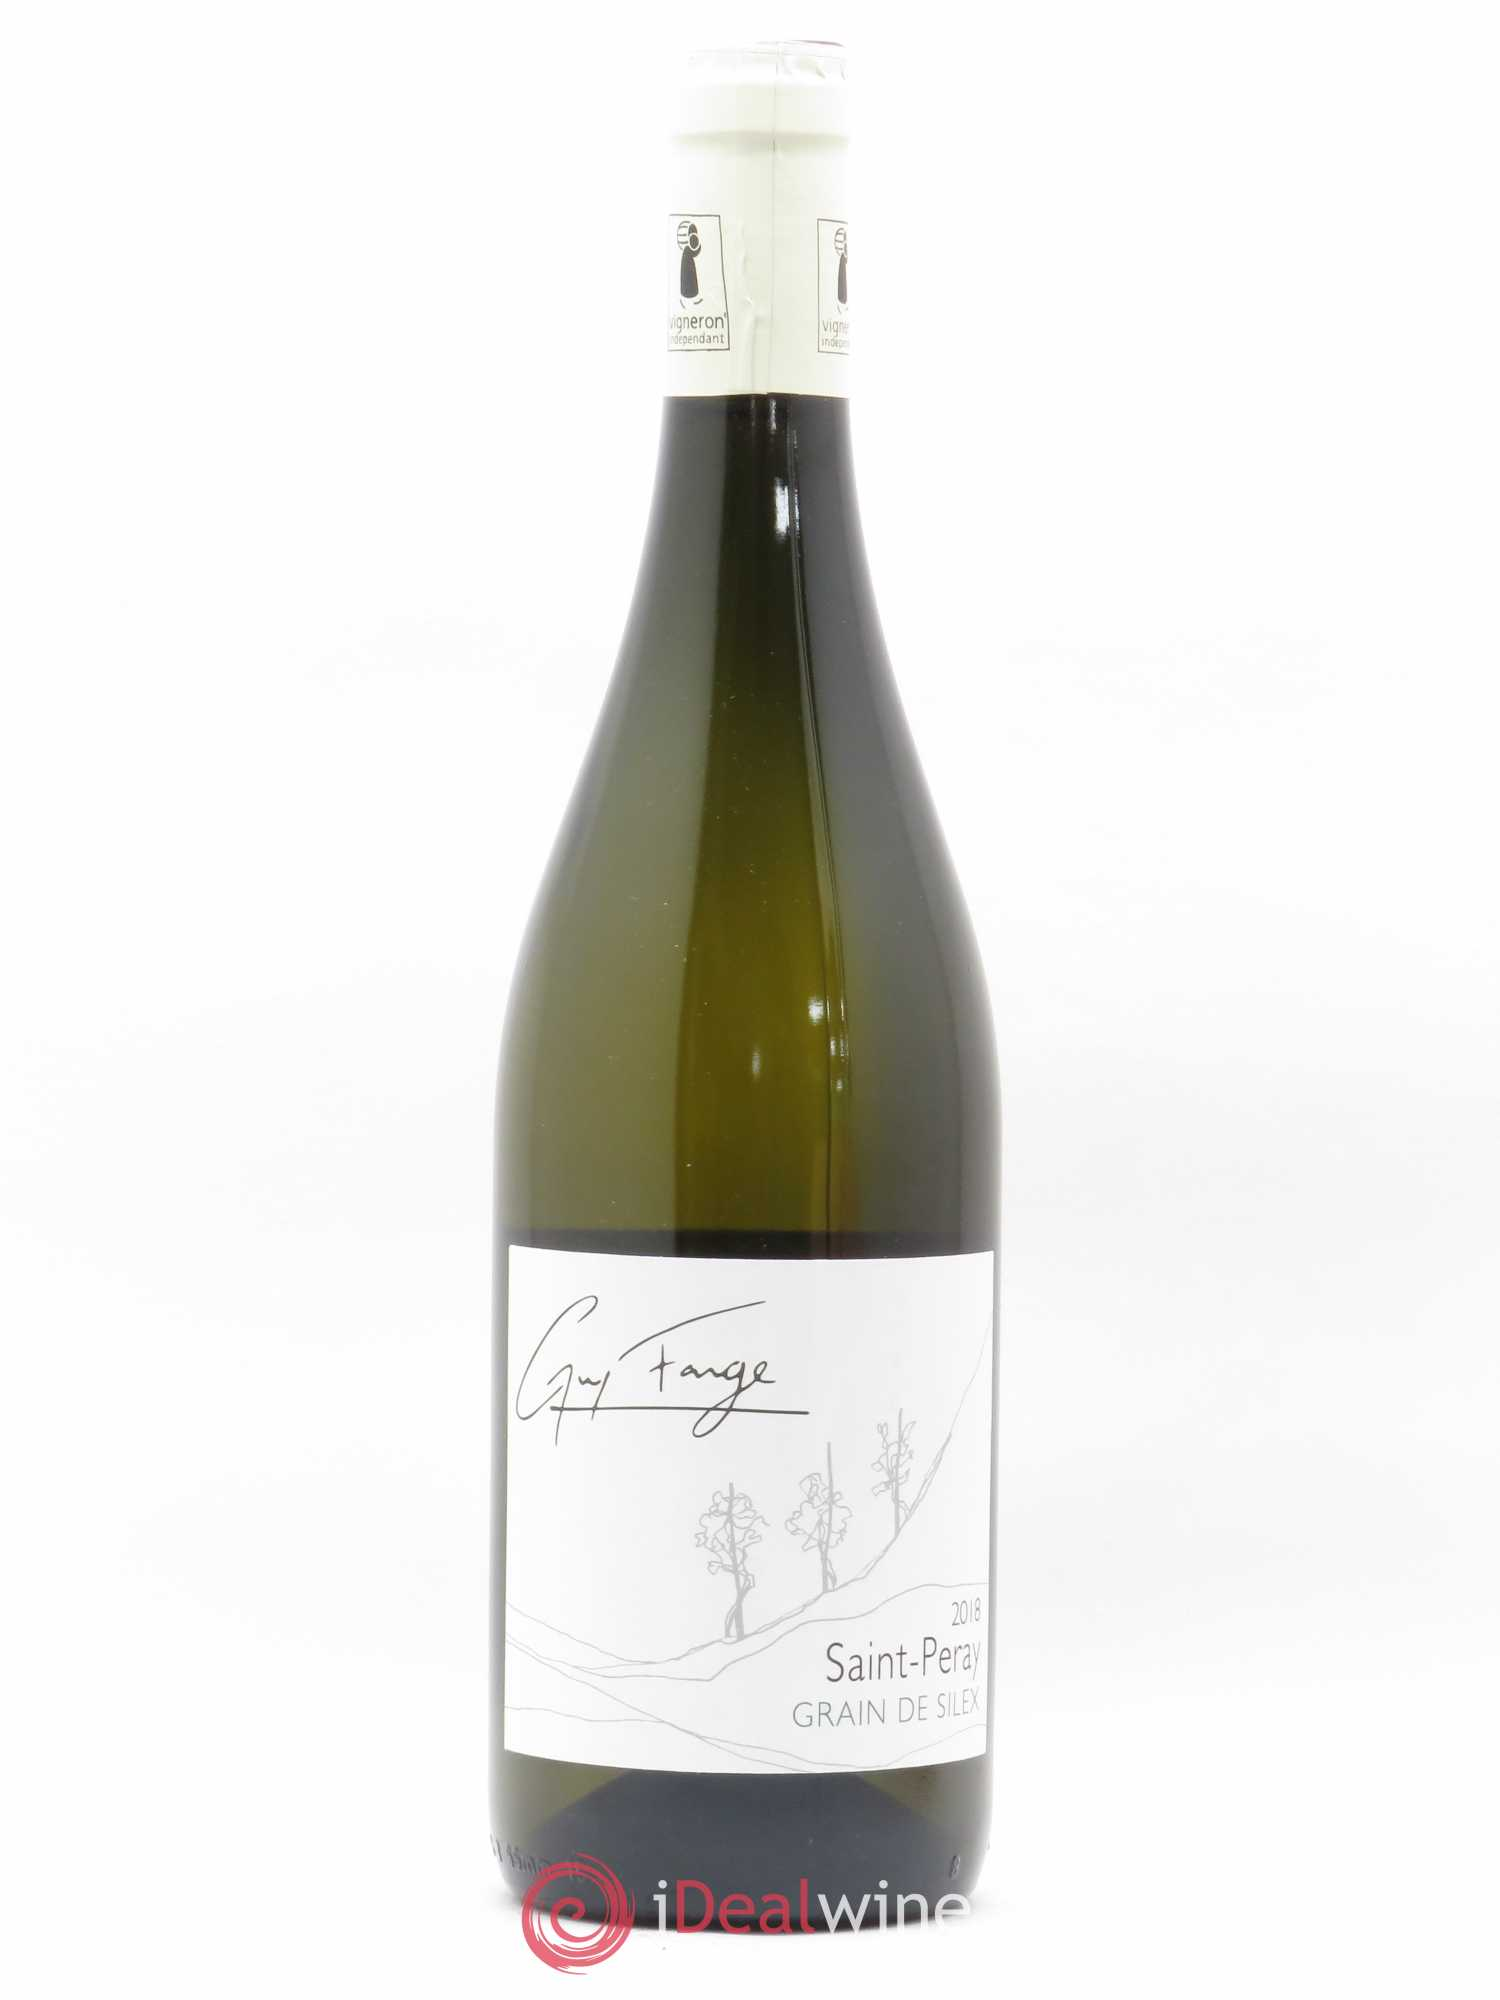 Saint-Péray Grain de Silex Domaine Guy Farge (no reserve) 2018 - Lot of 1 Bottle